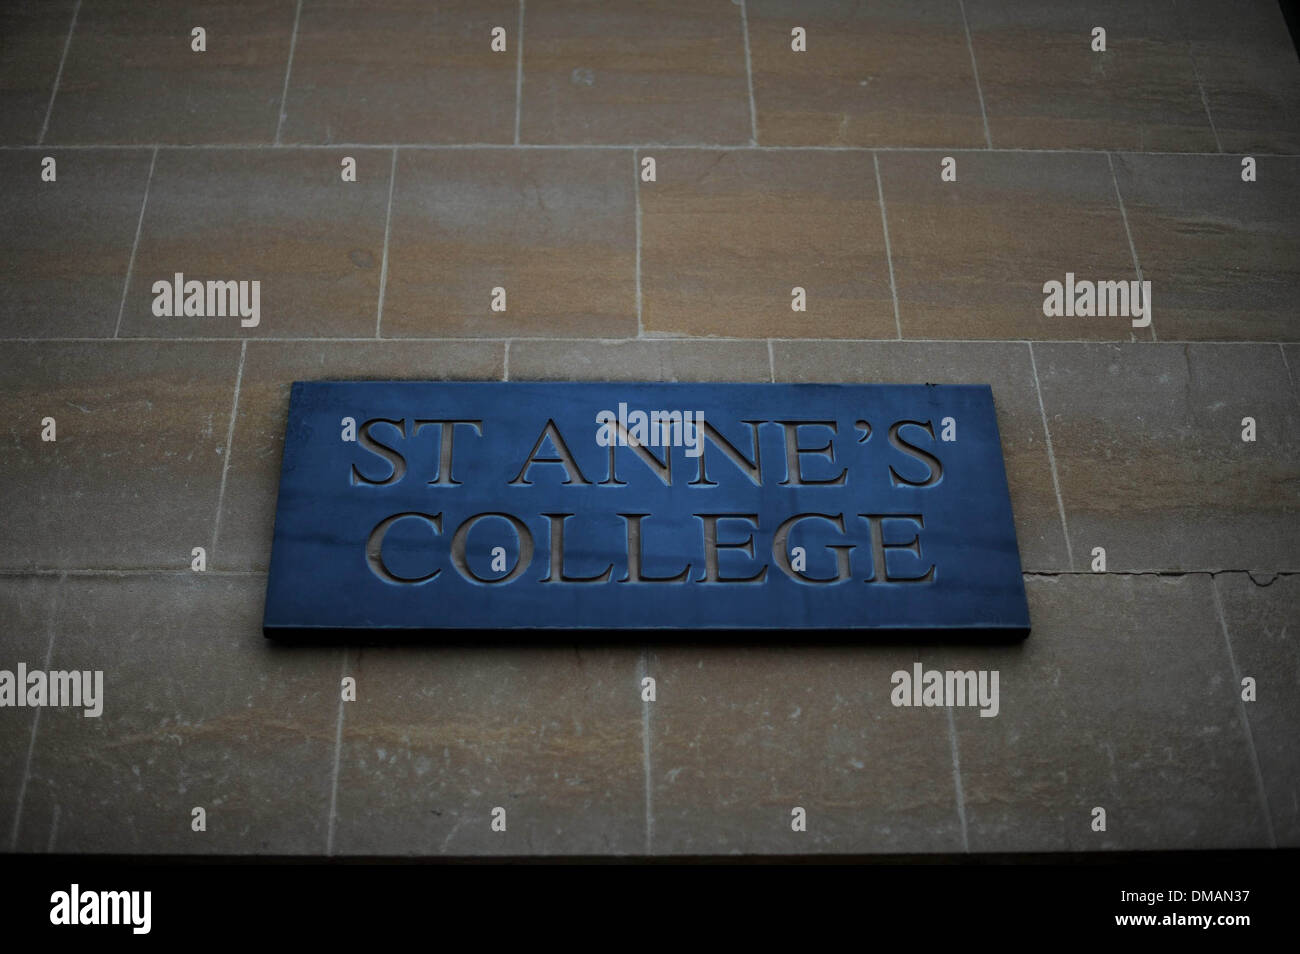 A general View of St Anne's College in Oxford, England. - Stock Image